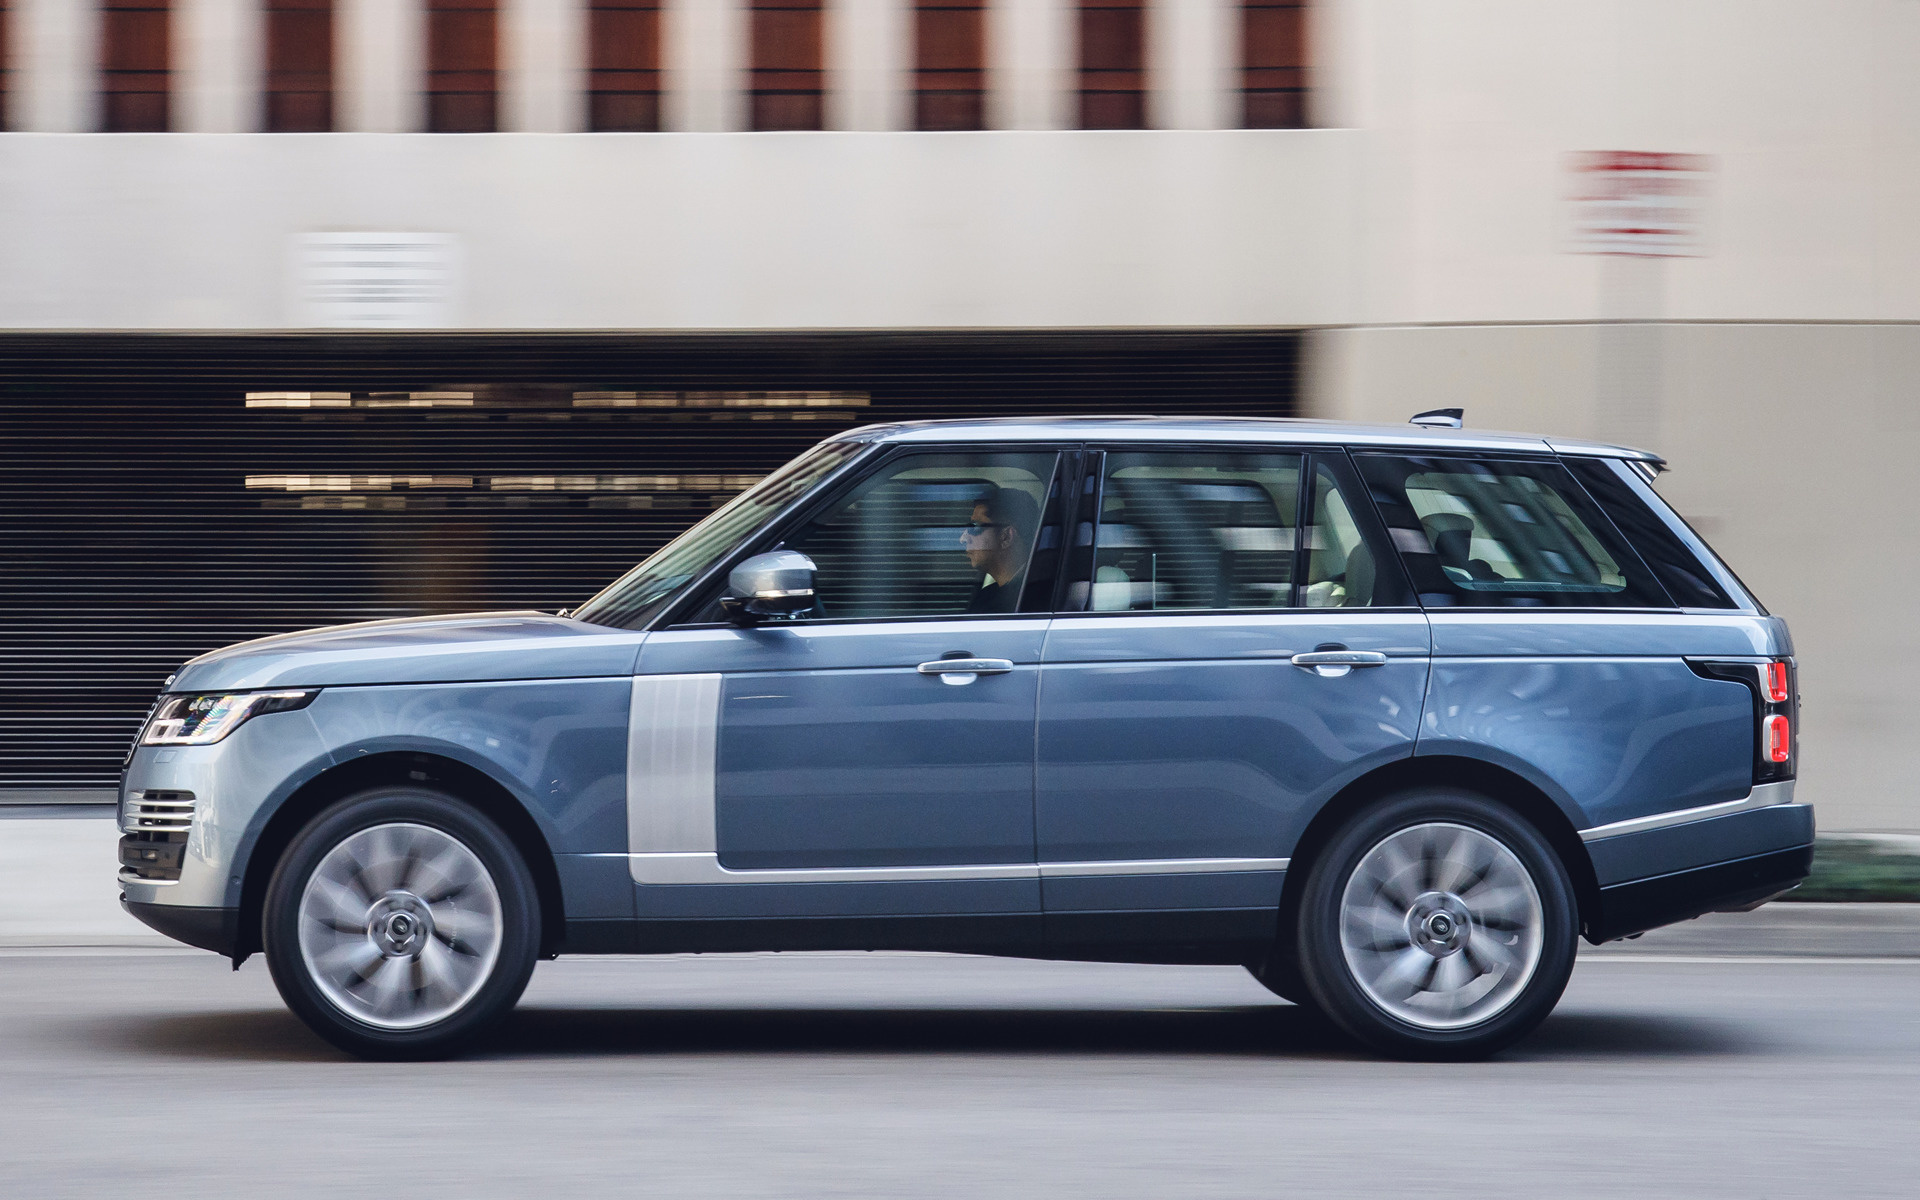 Range Rover Autobiography >> 2018 Range Rover Plug-in Hybrid Autobiography - Wallpapers and HD Images | Car Pixel